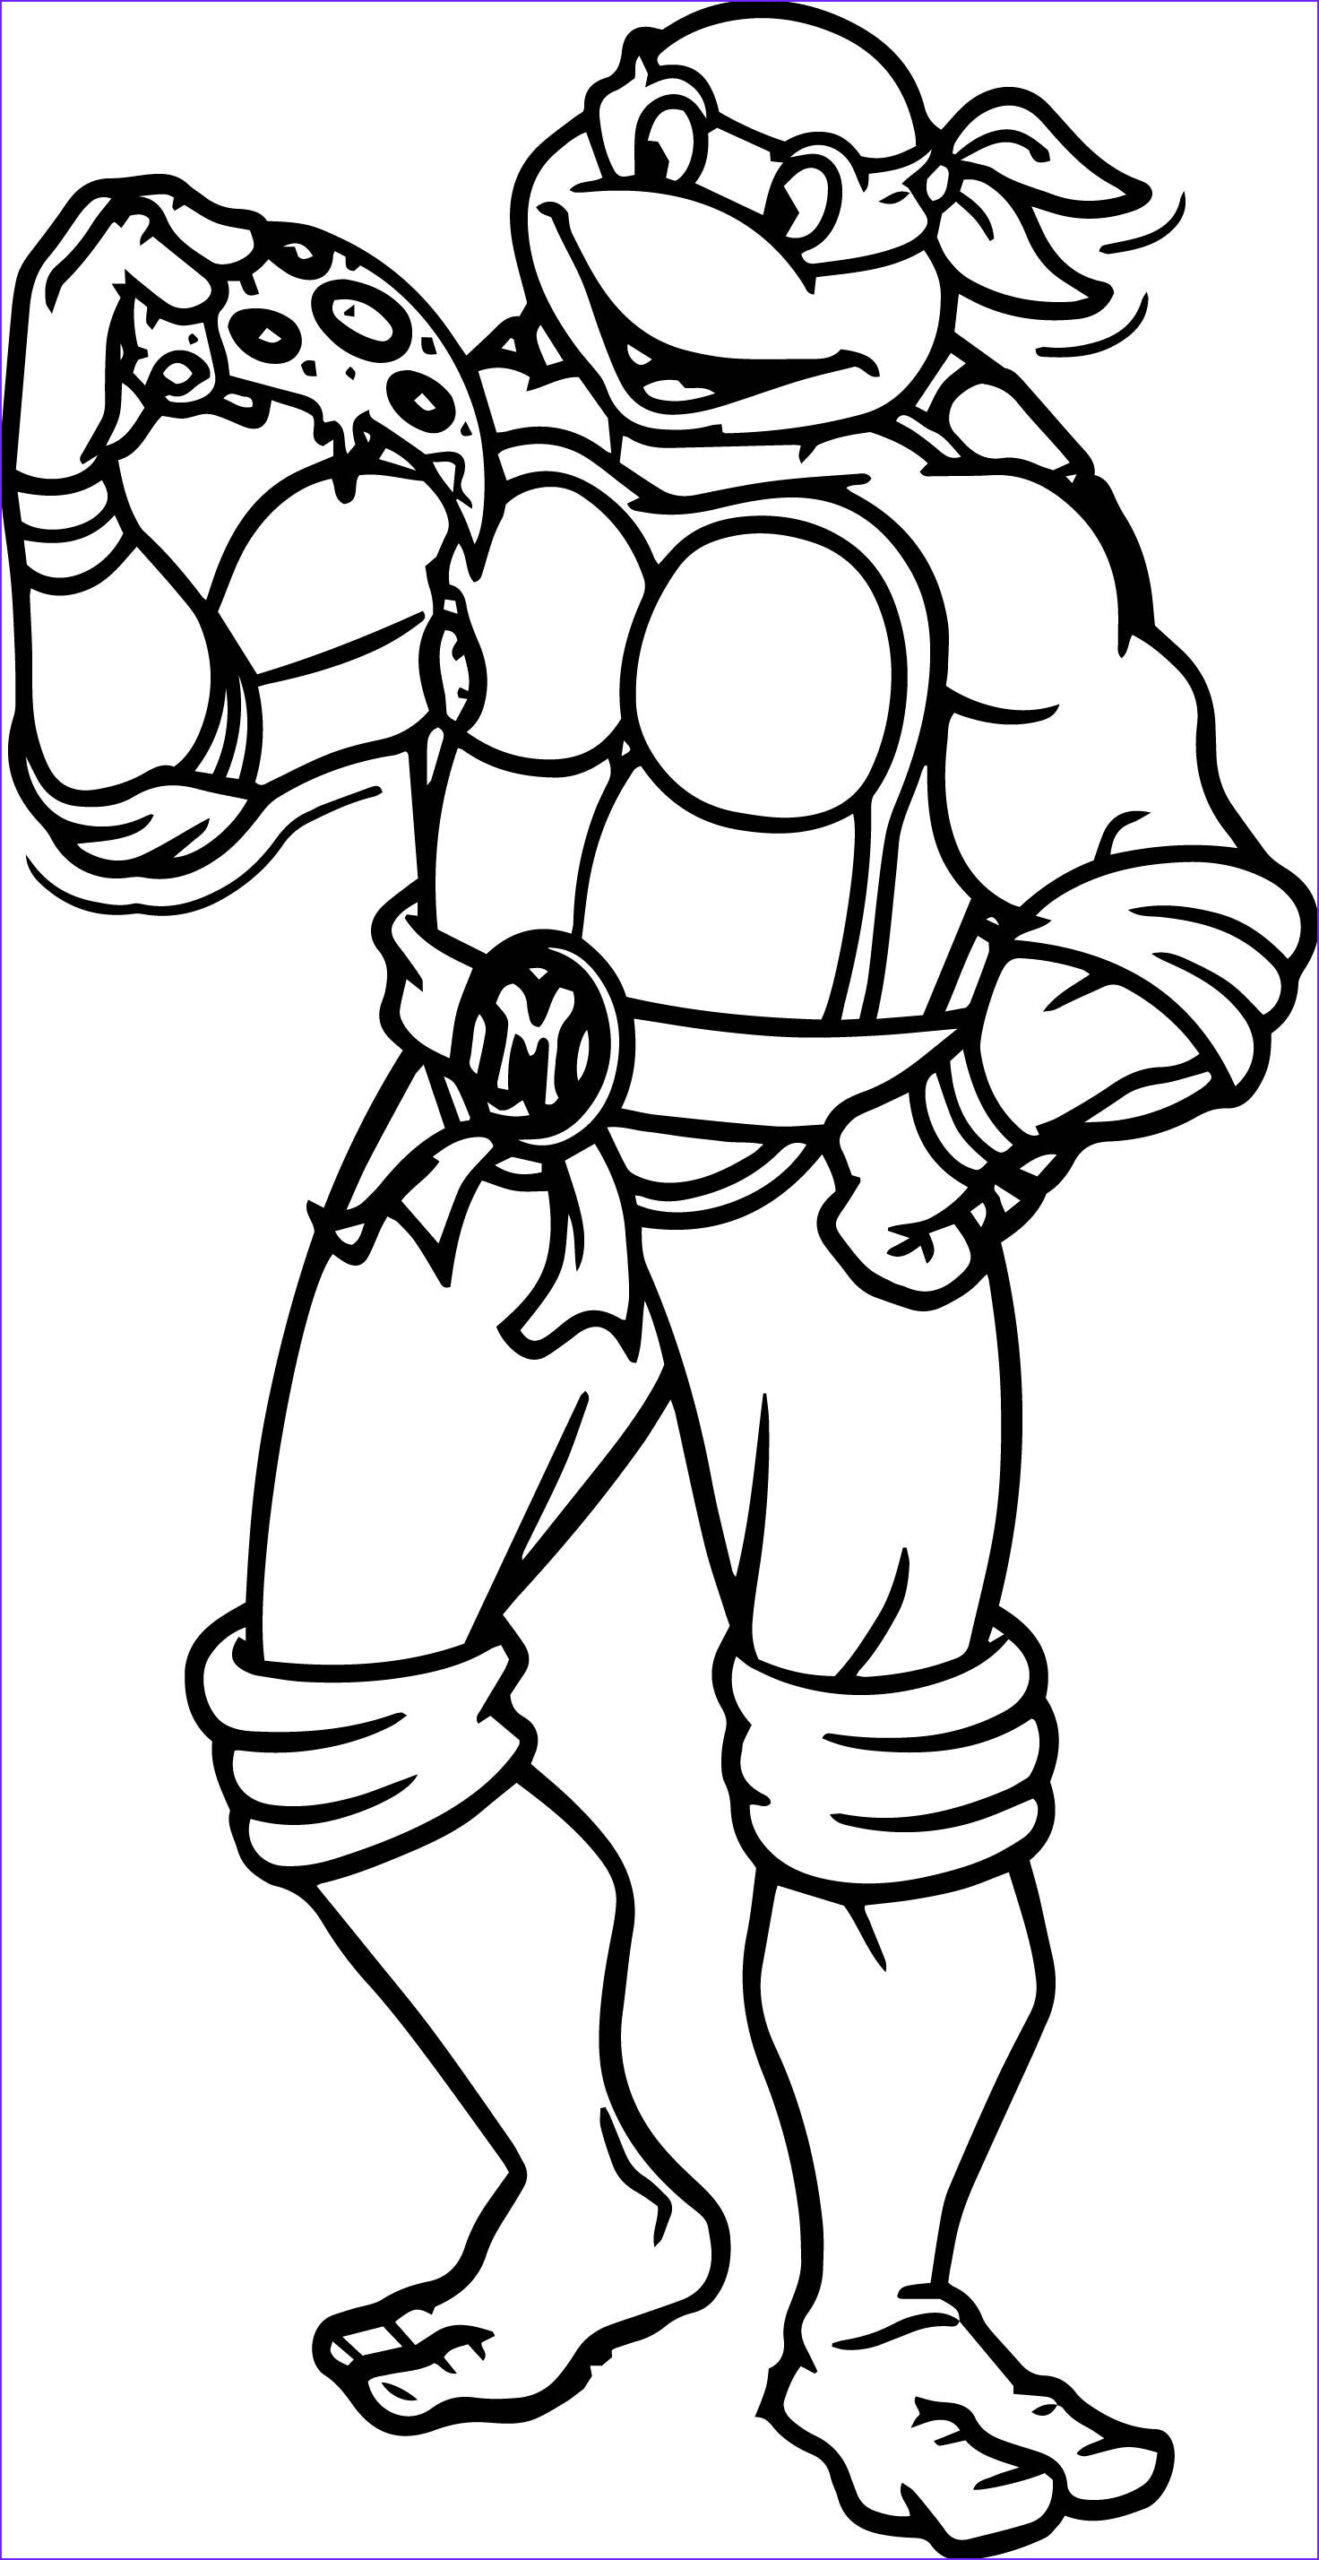 Turtle Coloring Book Awesome Photos Ninja Turtle Cartoon Coloring Pages for Kids